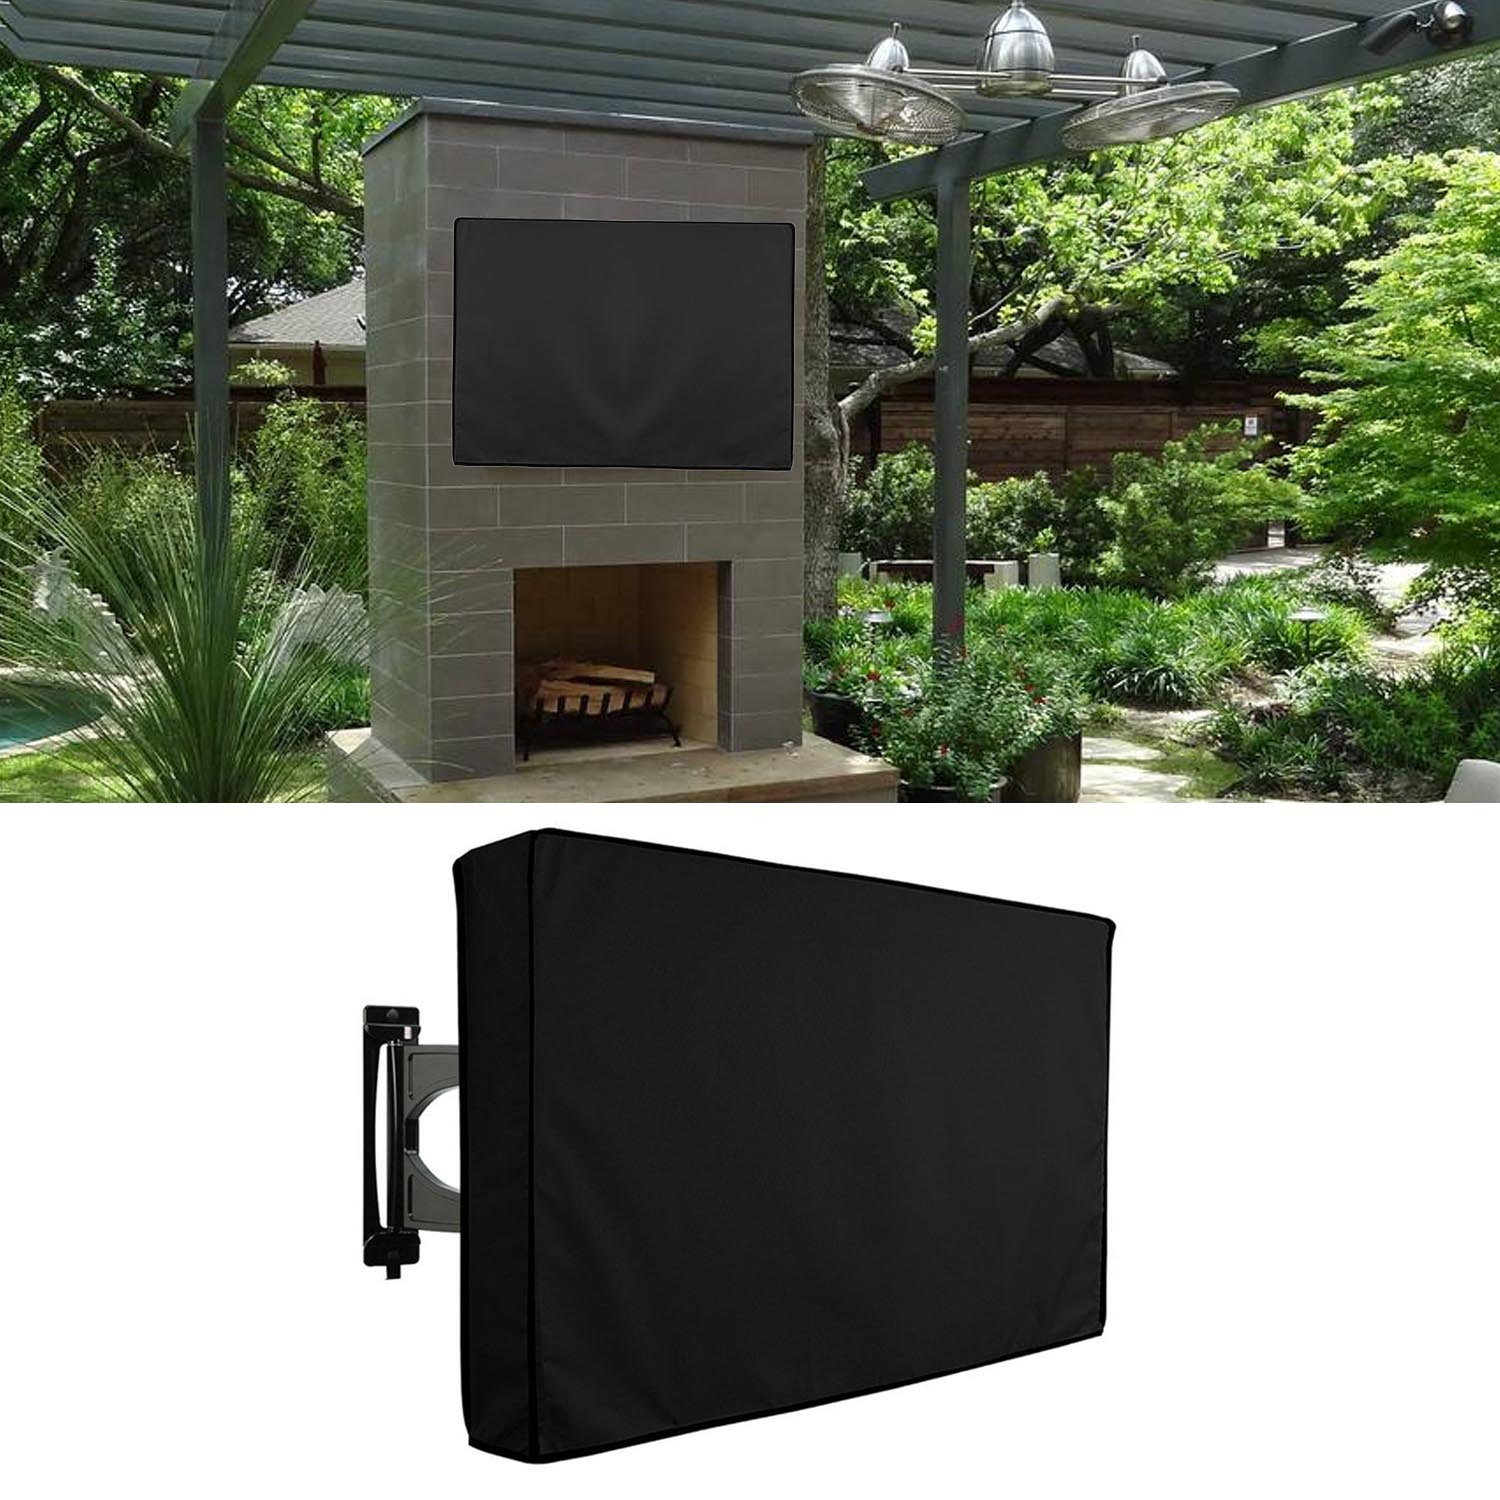 40-42Inch Outdoor TV Cover With Bottom Cover Quality Weatherproof Dustproof Mate